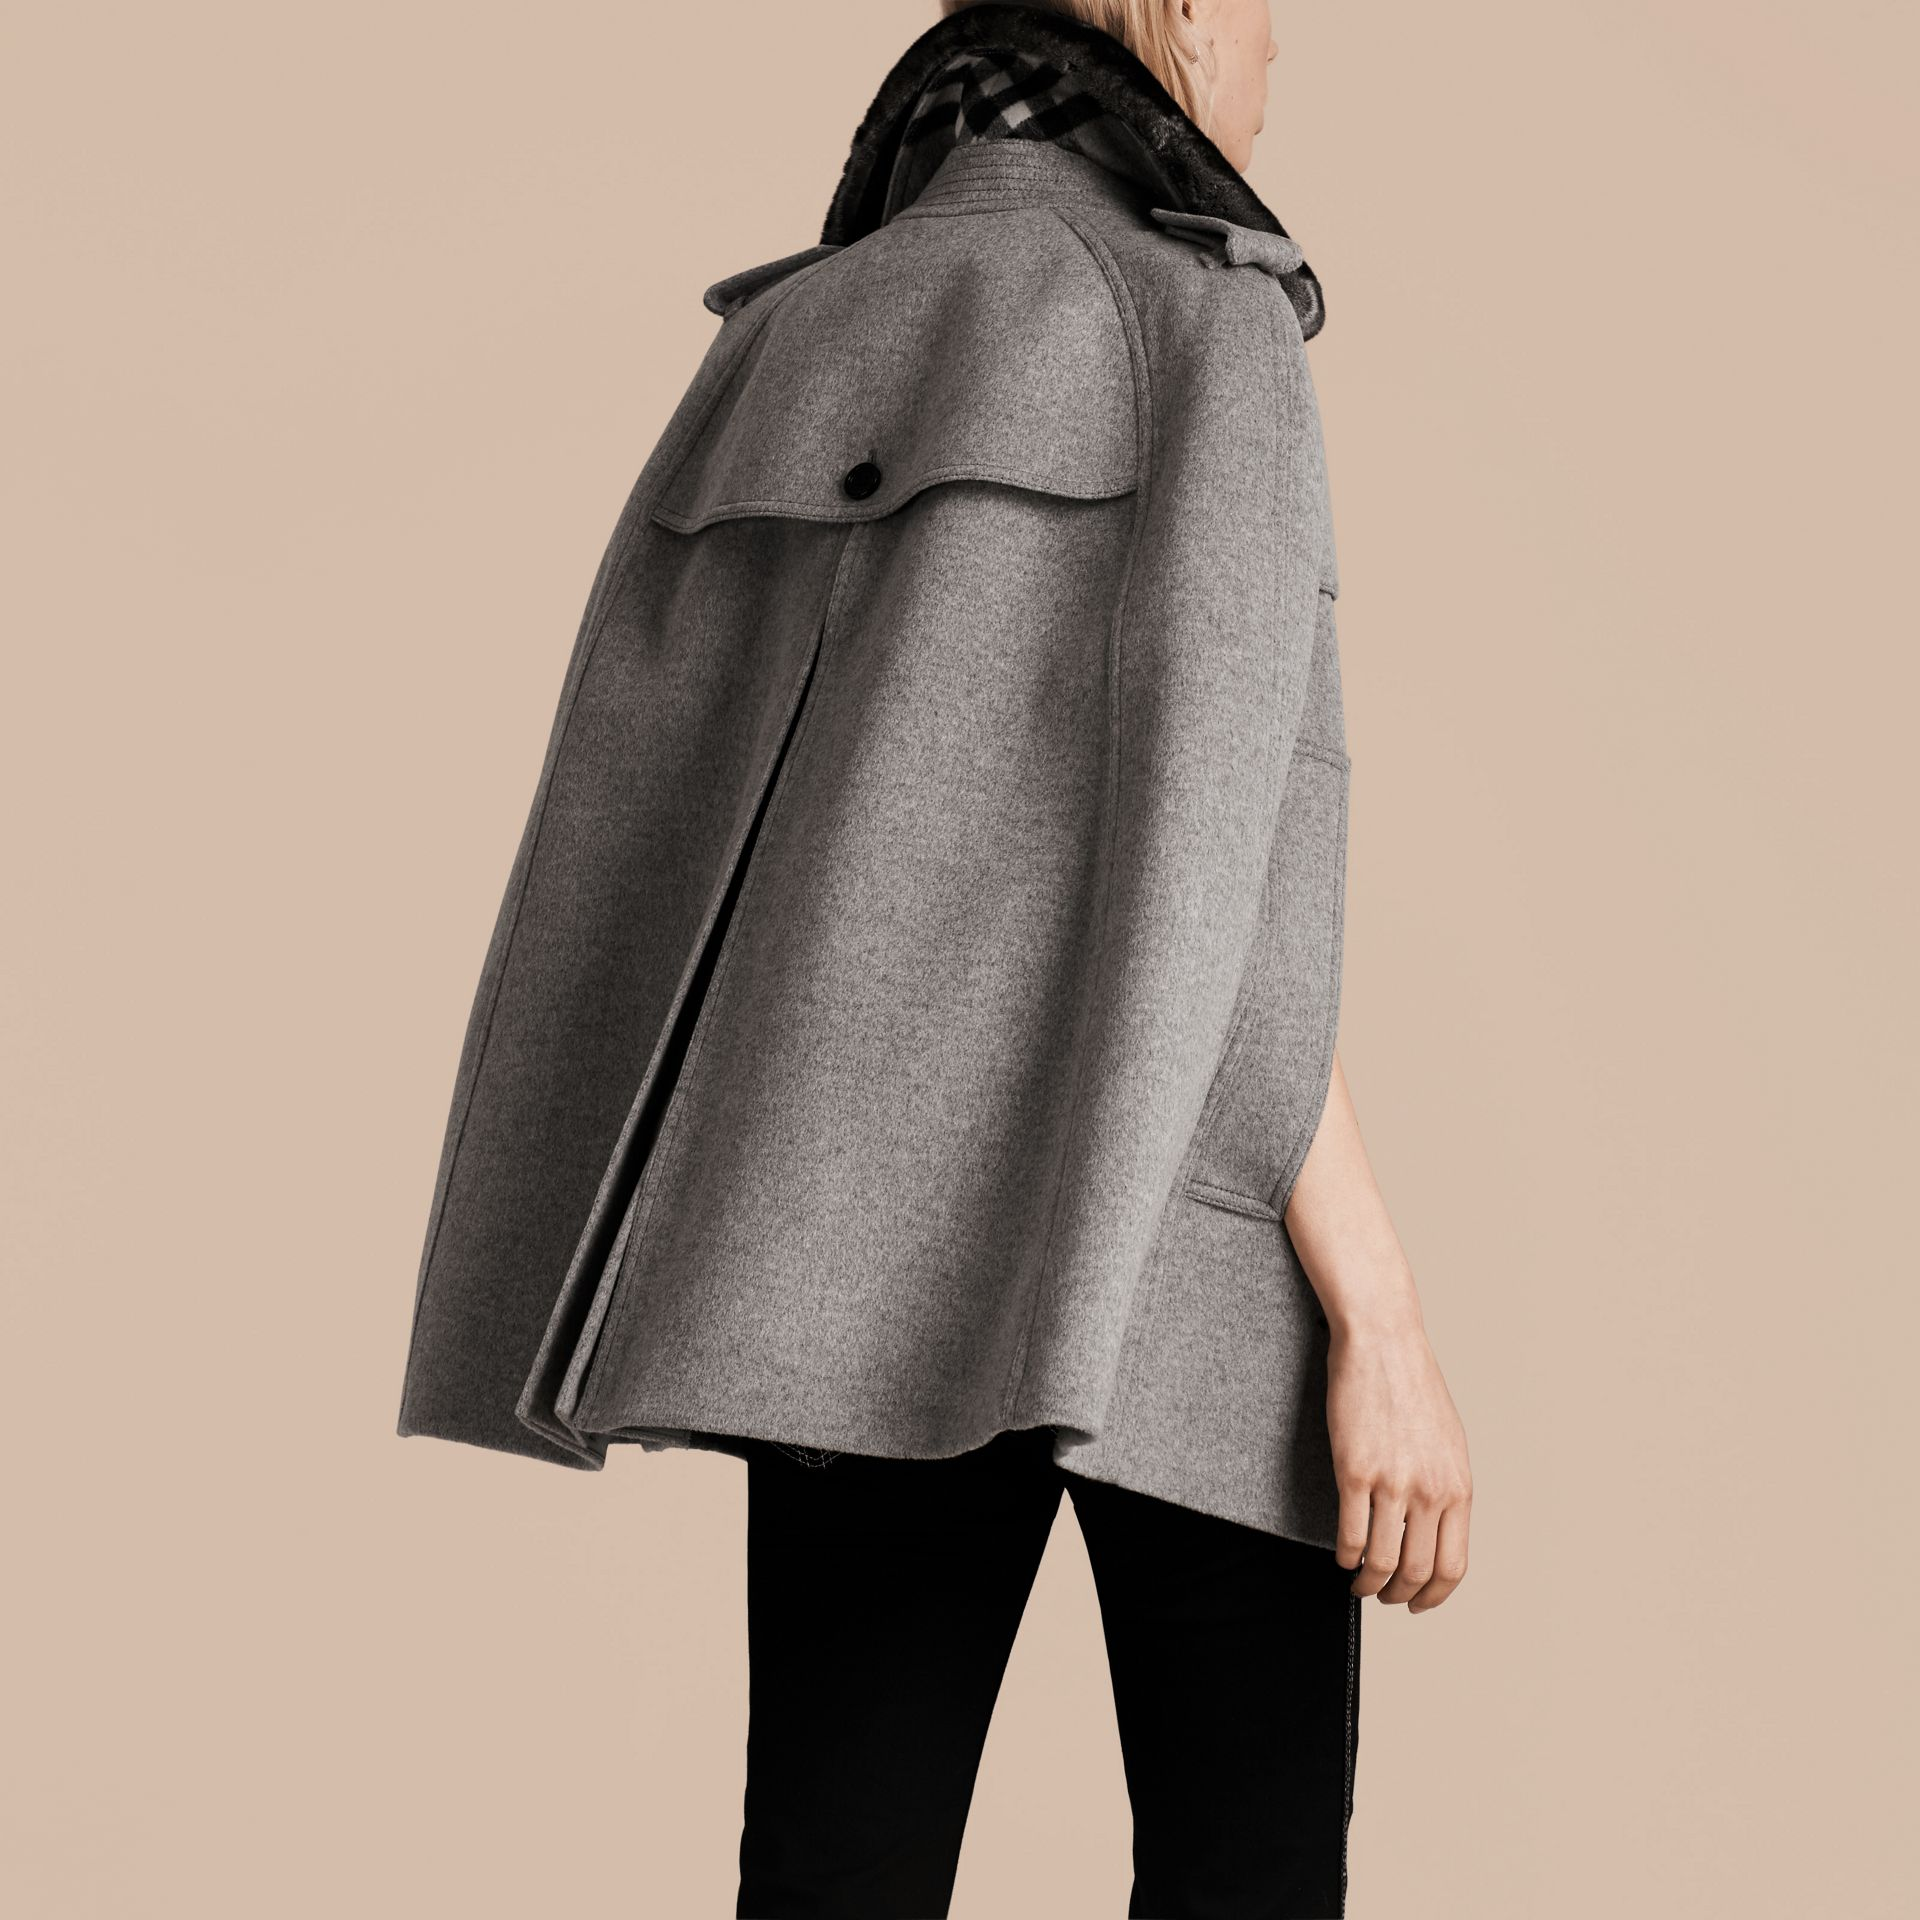 Pale grey melange Wool Cashmere Trench Cape with Detachable Fur Collar - gallery image 3